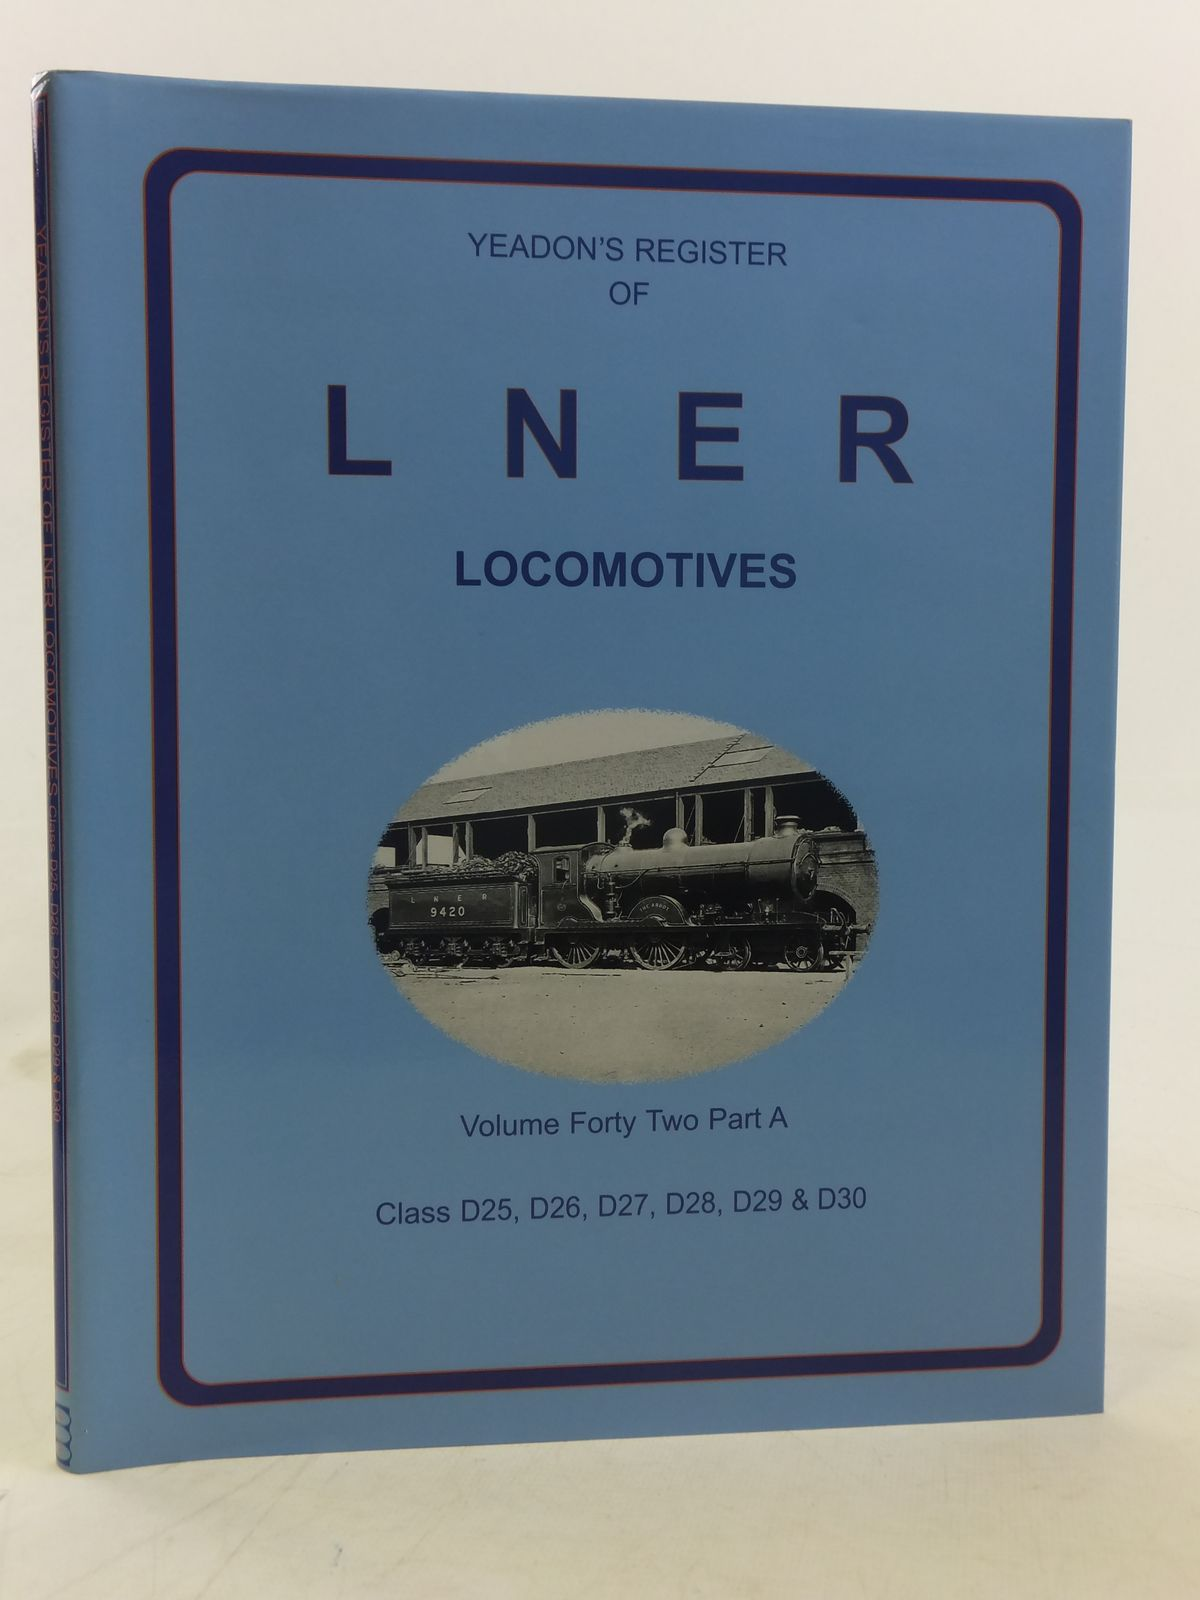 Photo of YEADON'S REGISTER OF LNER LOCOMOTIVES VOLUME FORTY TWO PART A published by Challenger Publications, Book Law Publications (STOCK CODE: 1606893)  for sale by Stella & Rose's Books